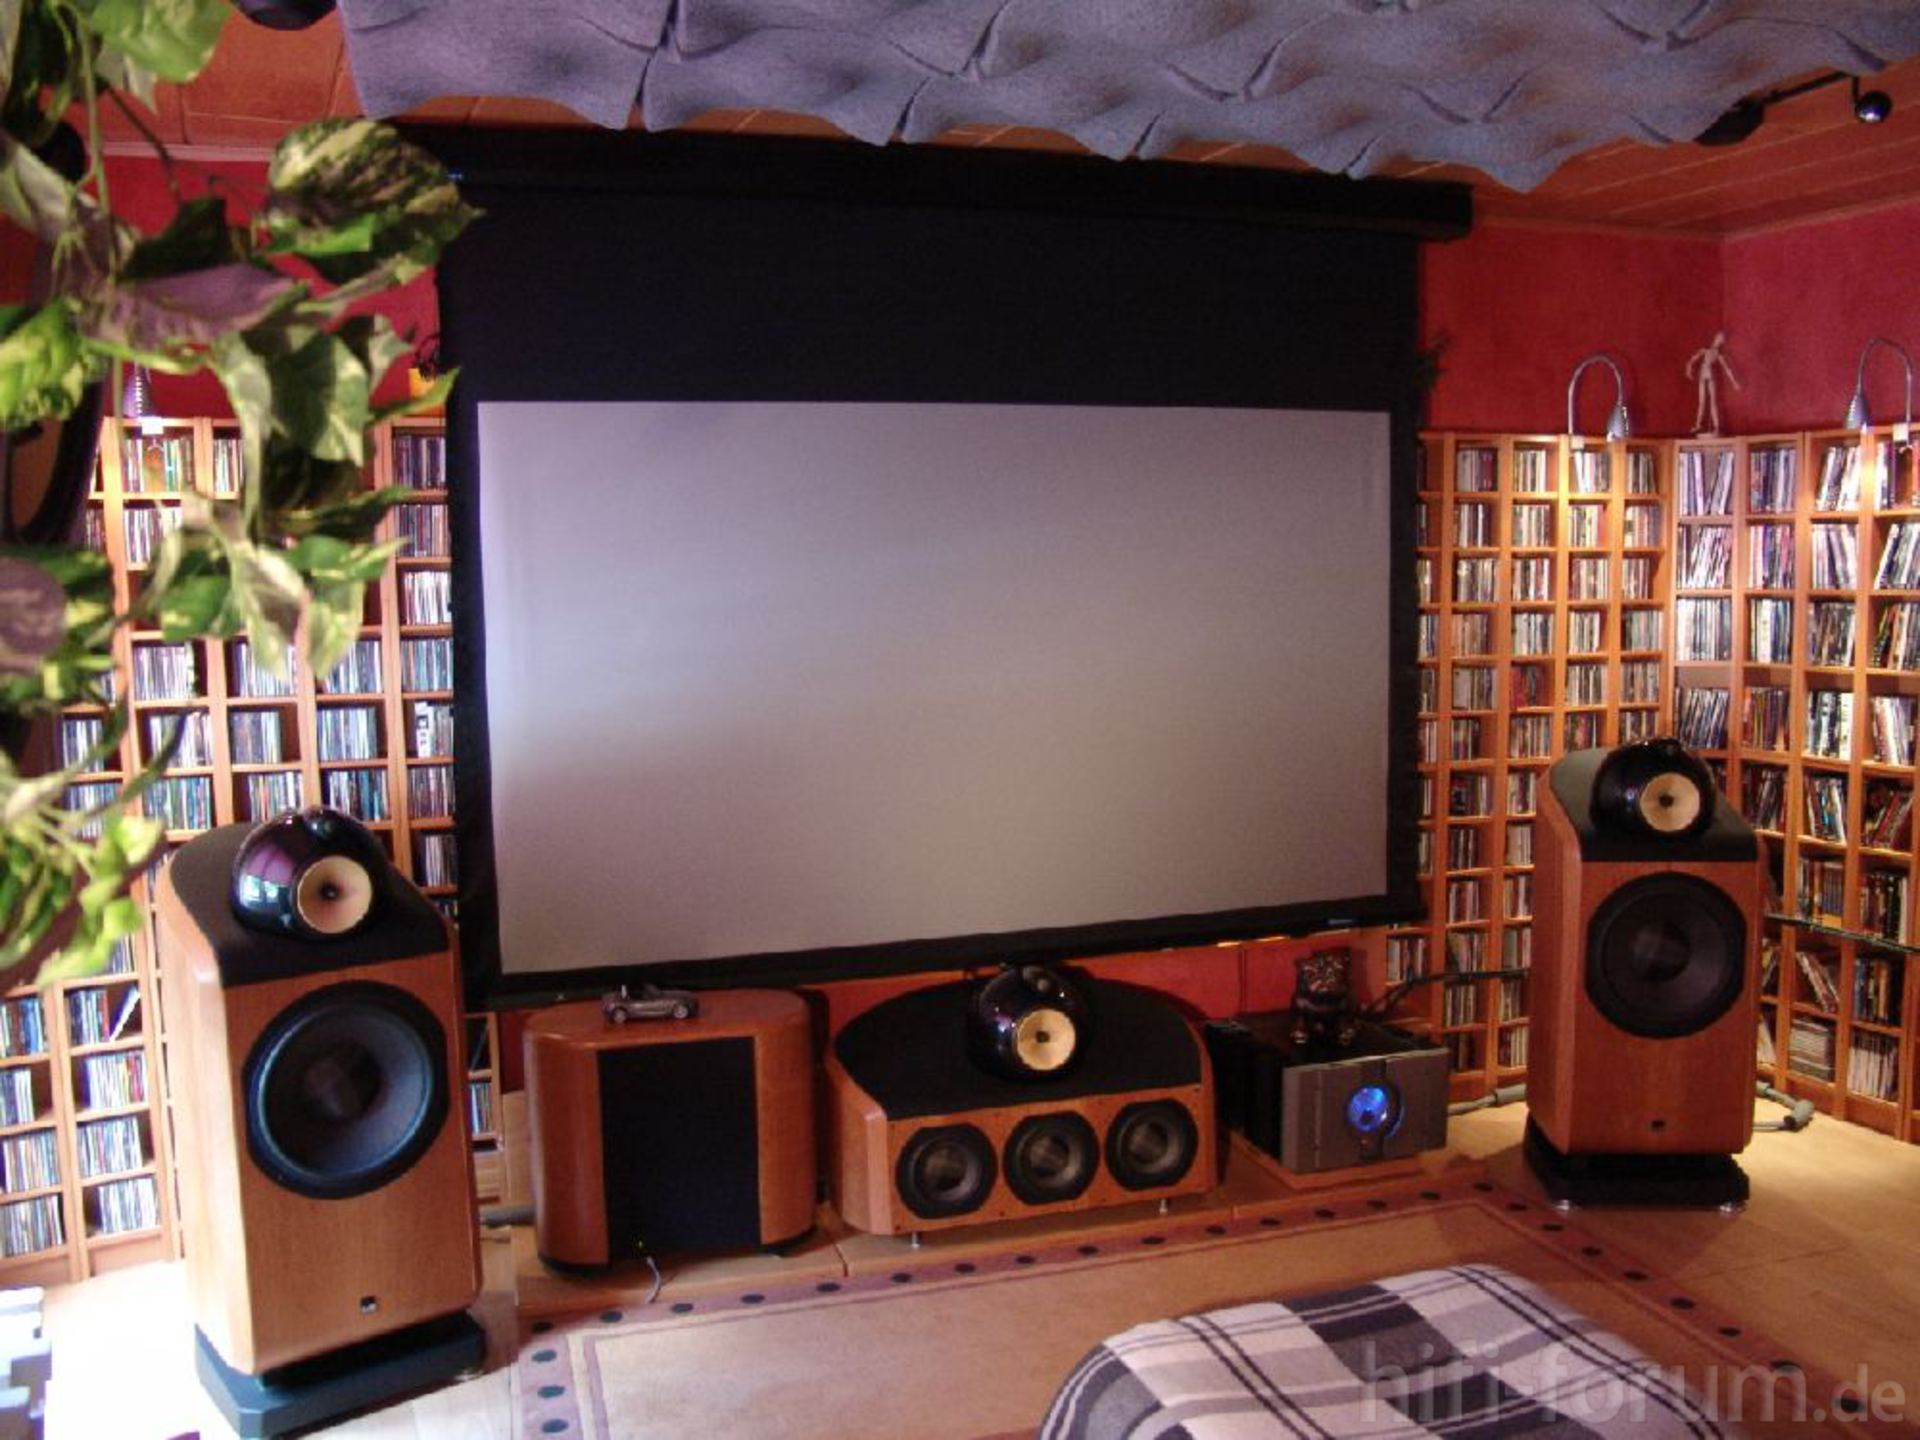 homecinema front front heimkino homecinema surround hifi bildergalerie. Black Bedroom Furniture Sets. Home Design Ideas